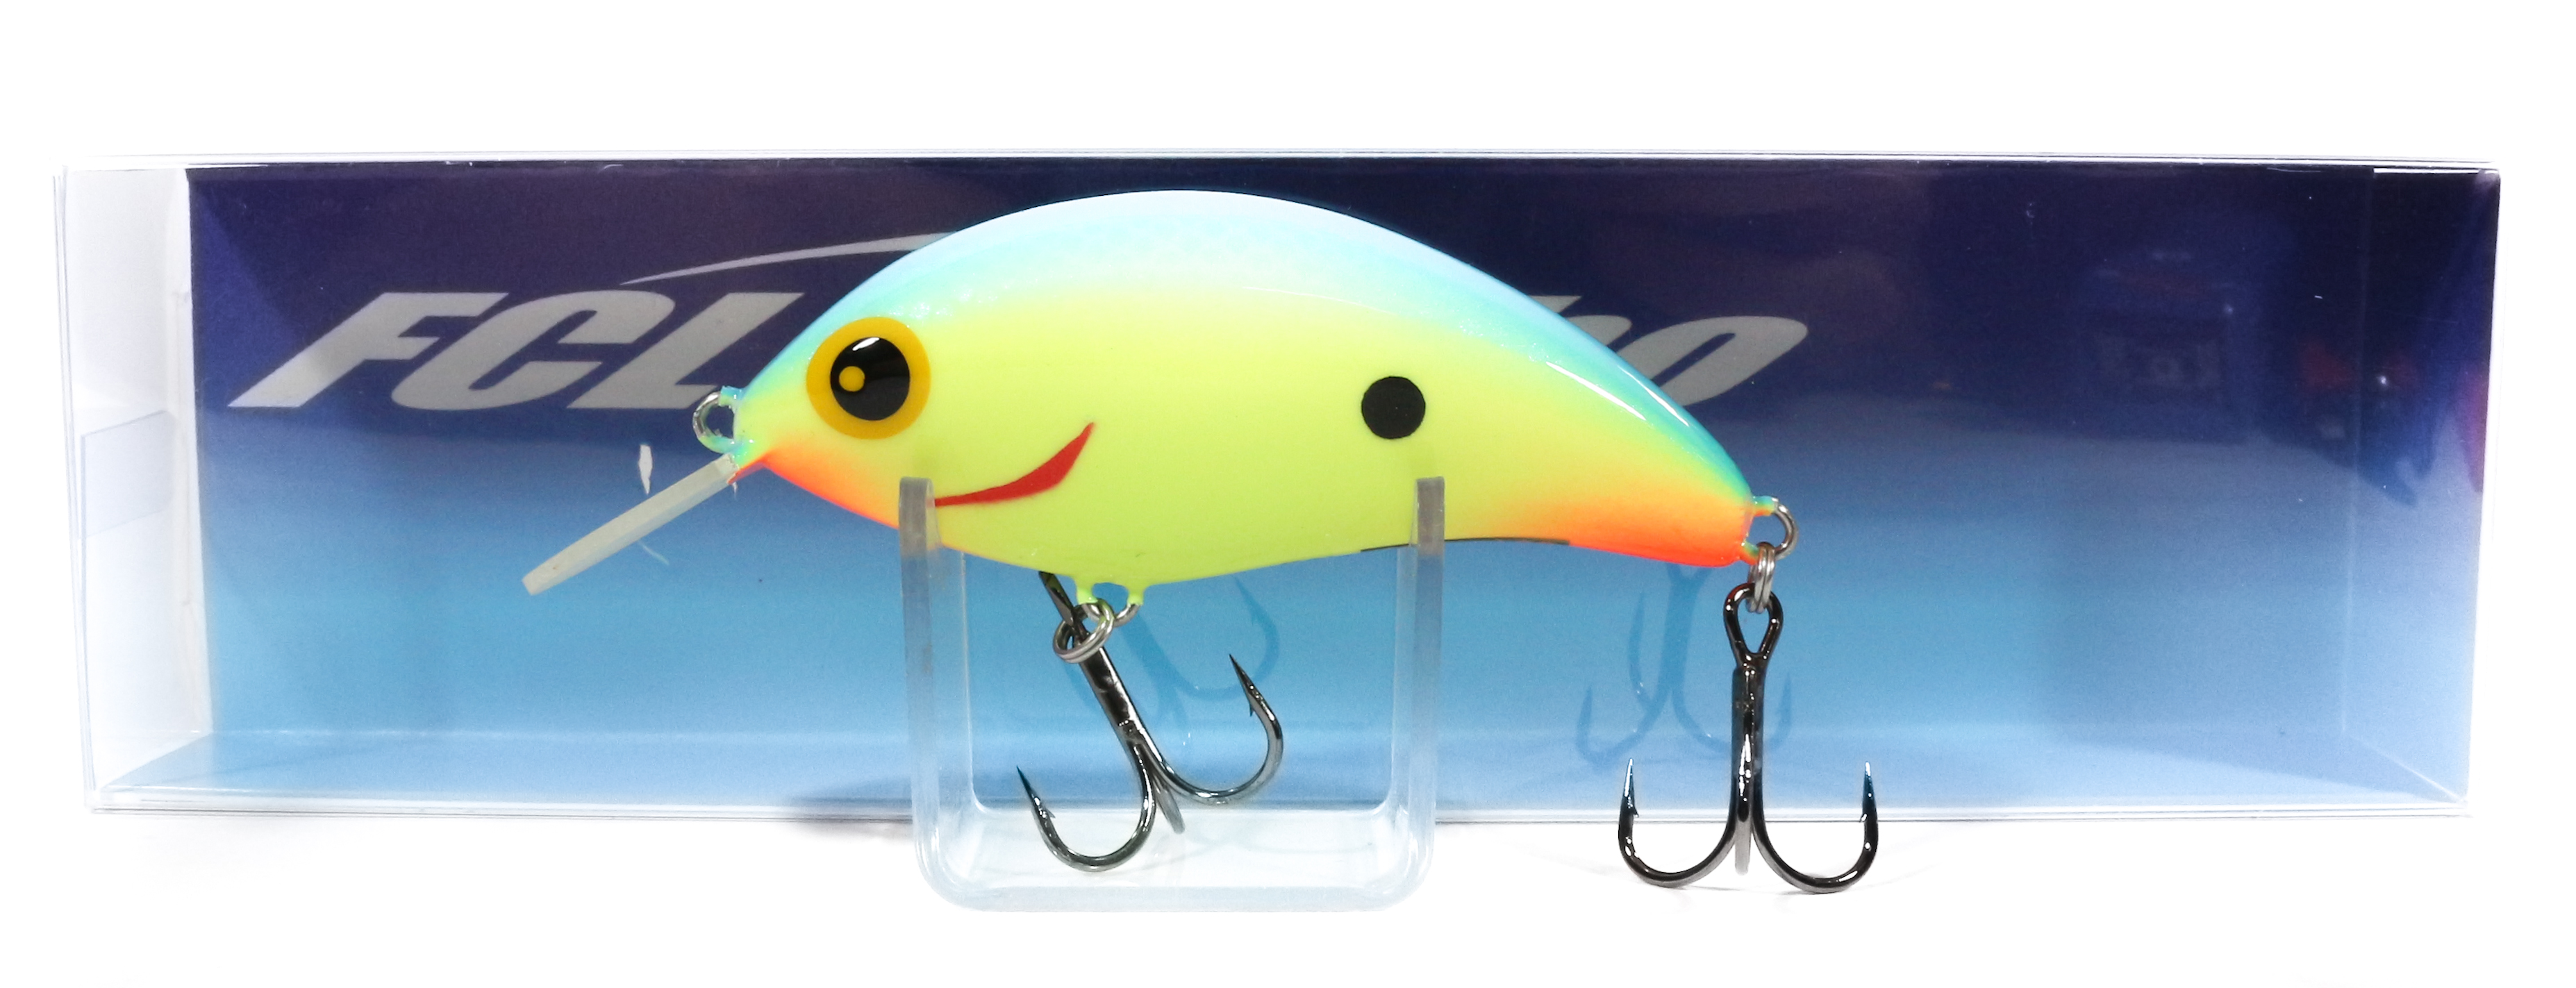 FCL Labo Lure Keshal 63 Floating Lure DO (4419)